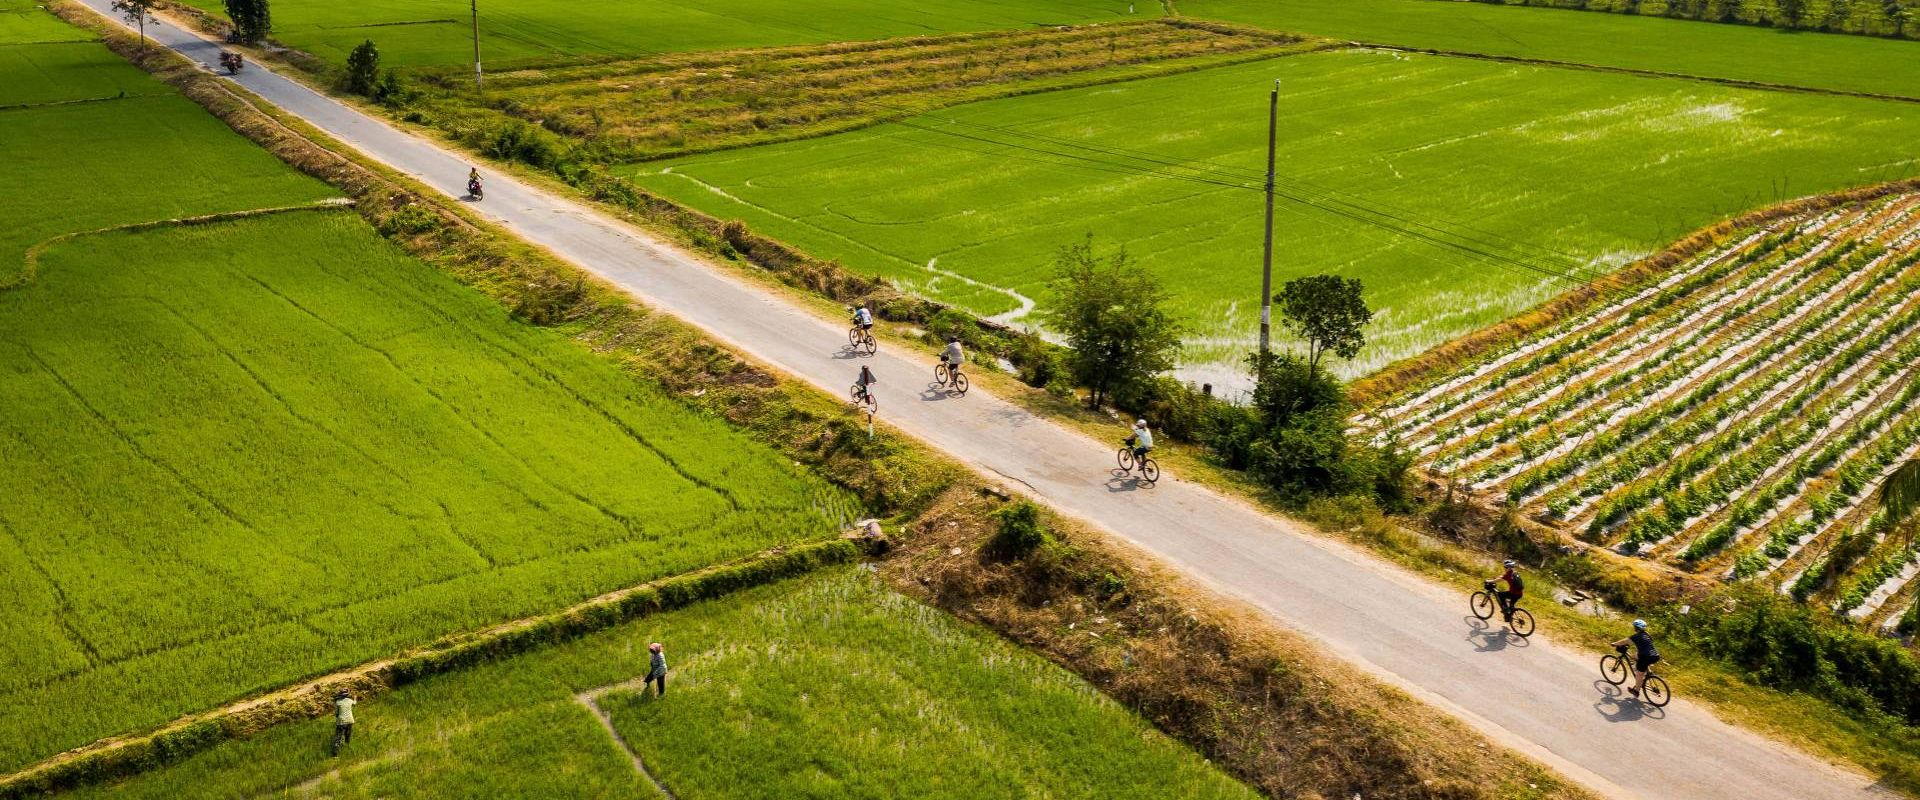 Cycling In Countryside